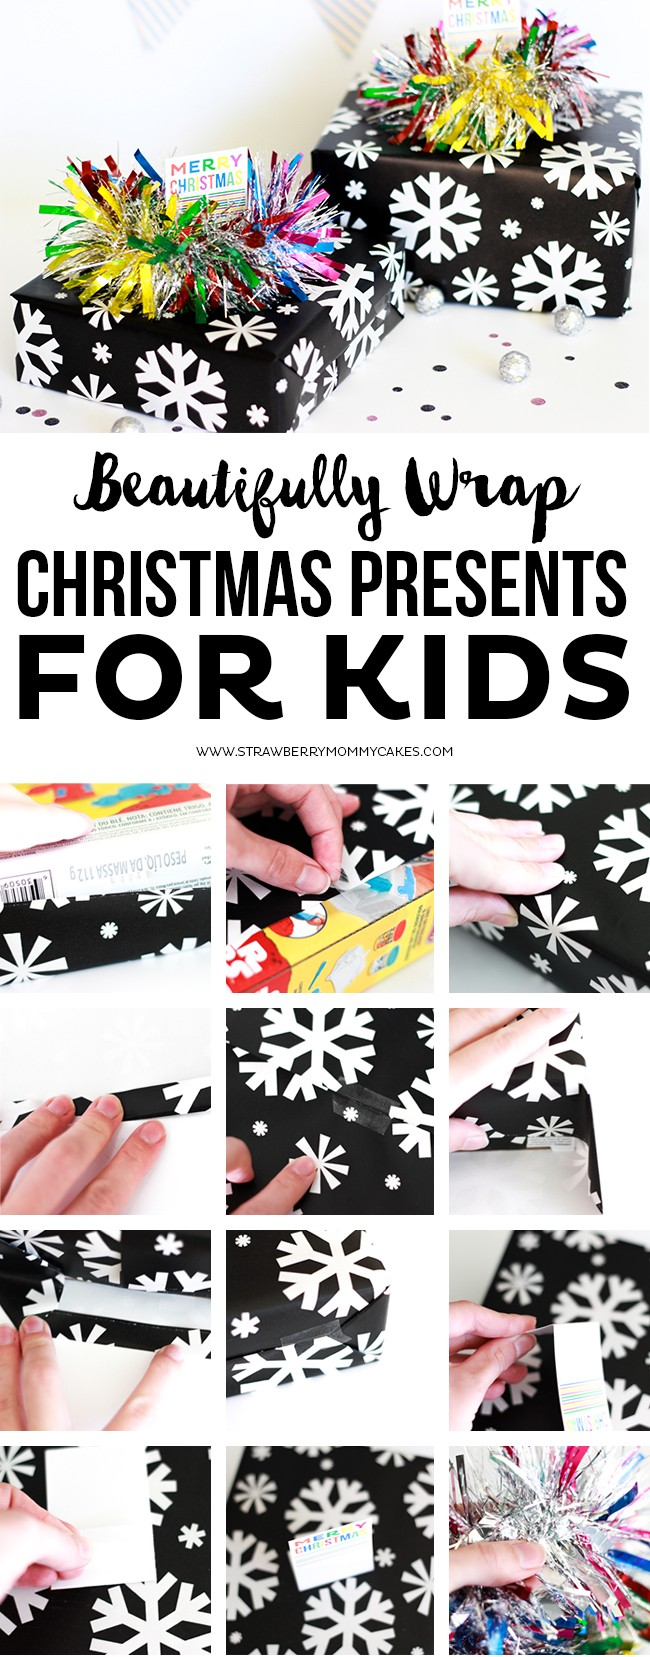 How to Beautifully Wrap Christmas Presents for Kids